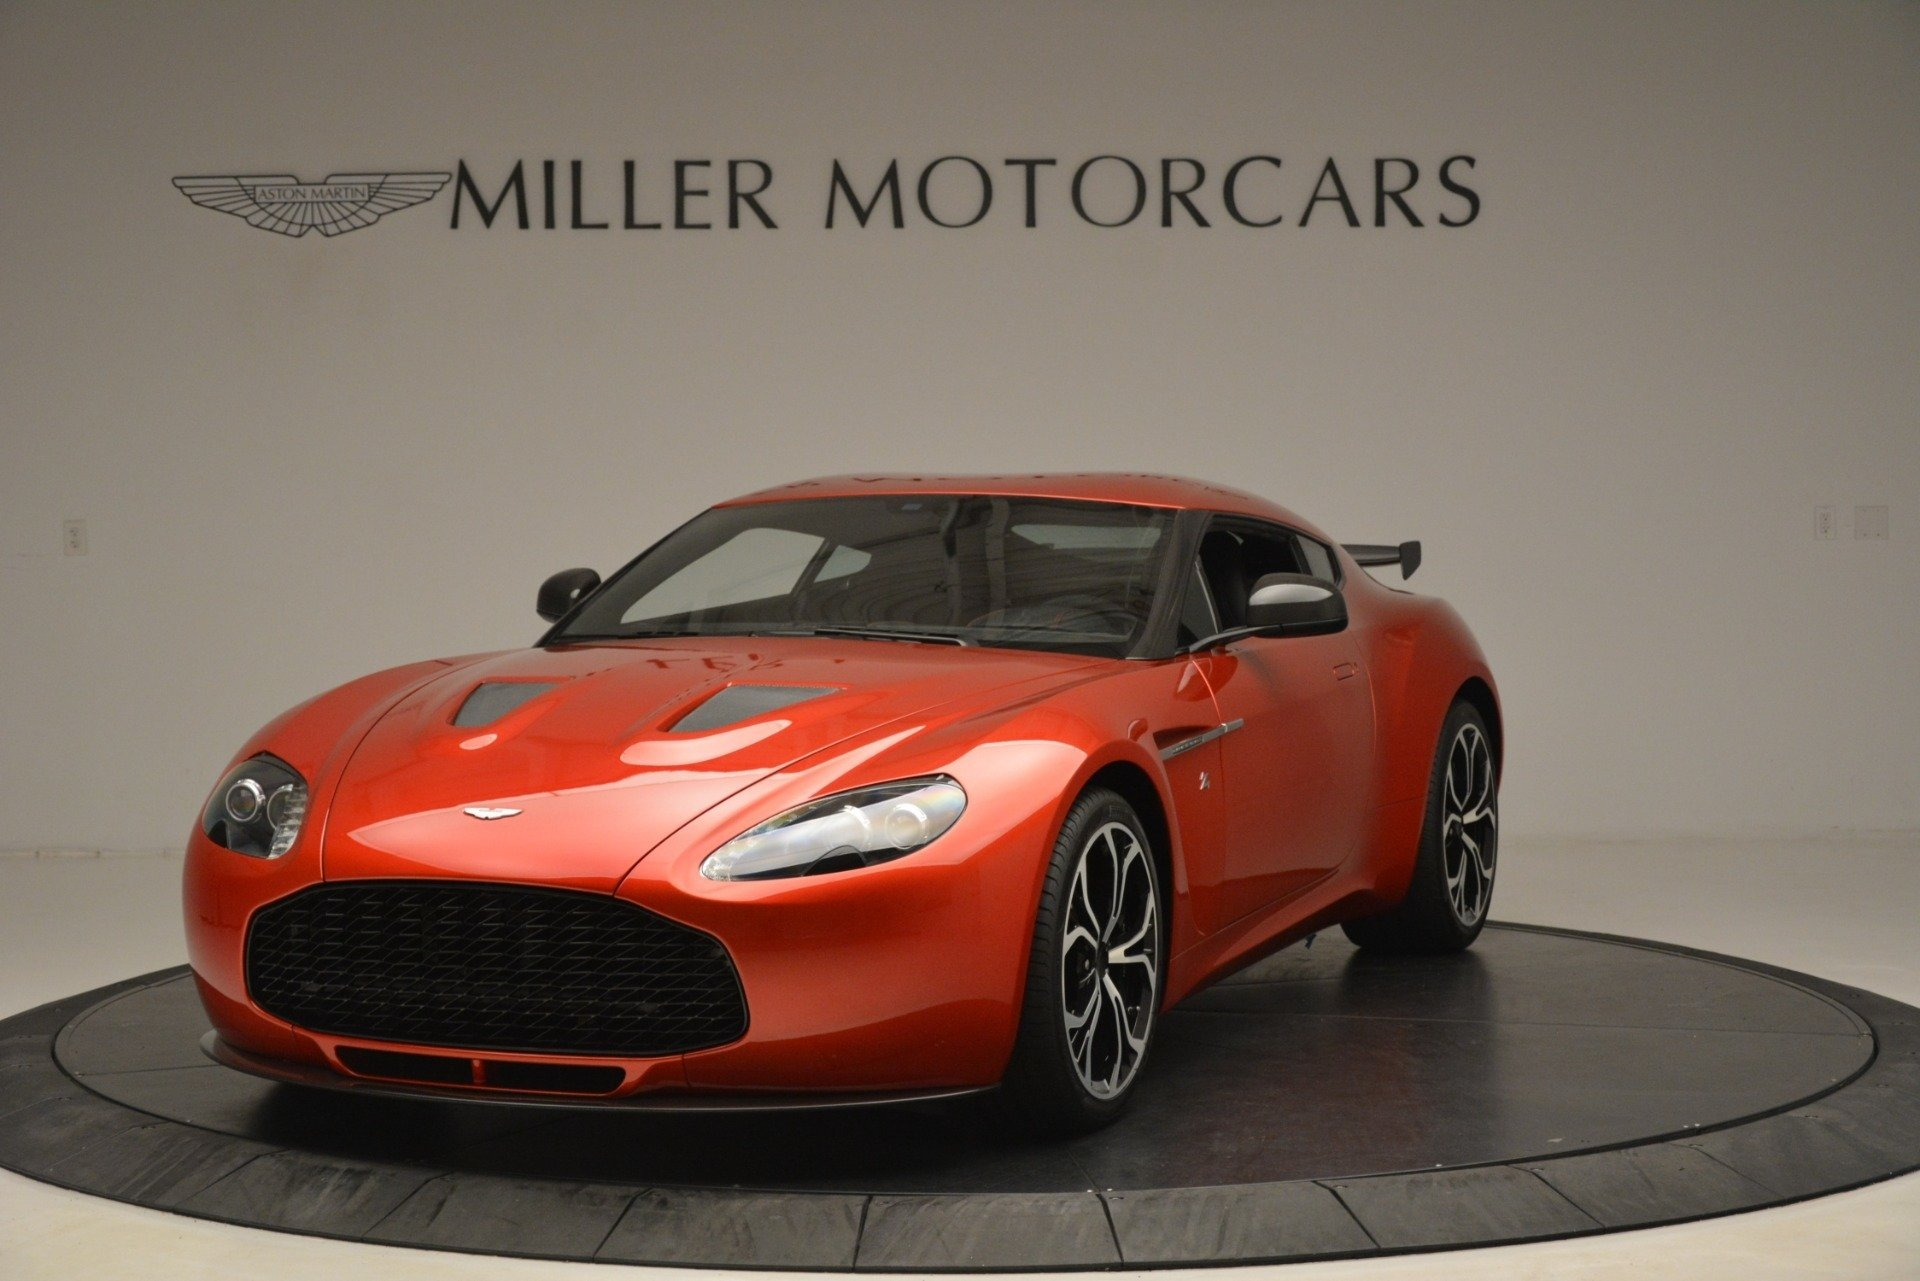 Used 2013 Aston Martin V12 Zagato Coupe for sale Sold at Pagani of Greenwich in Greenwich CT 06830 1